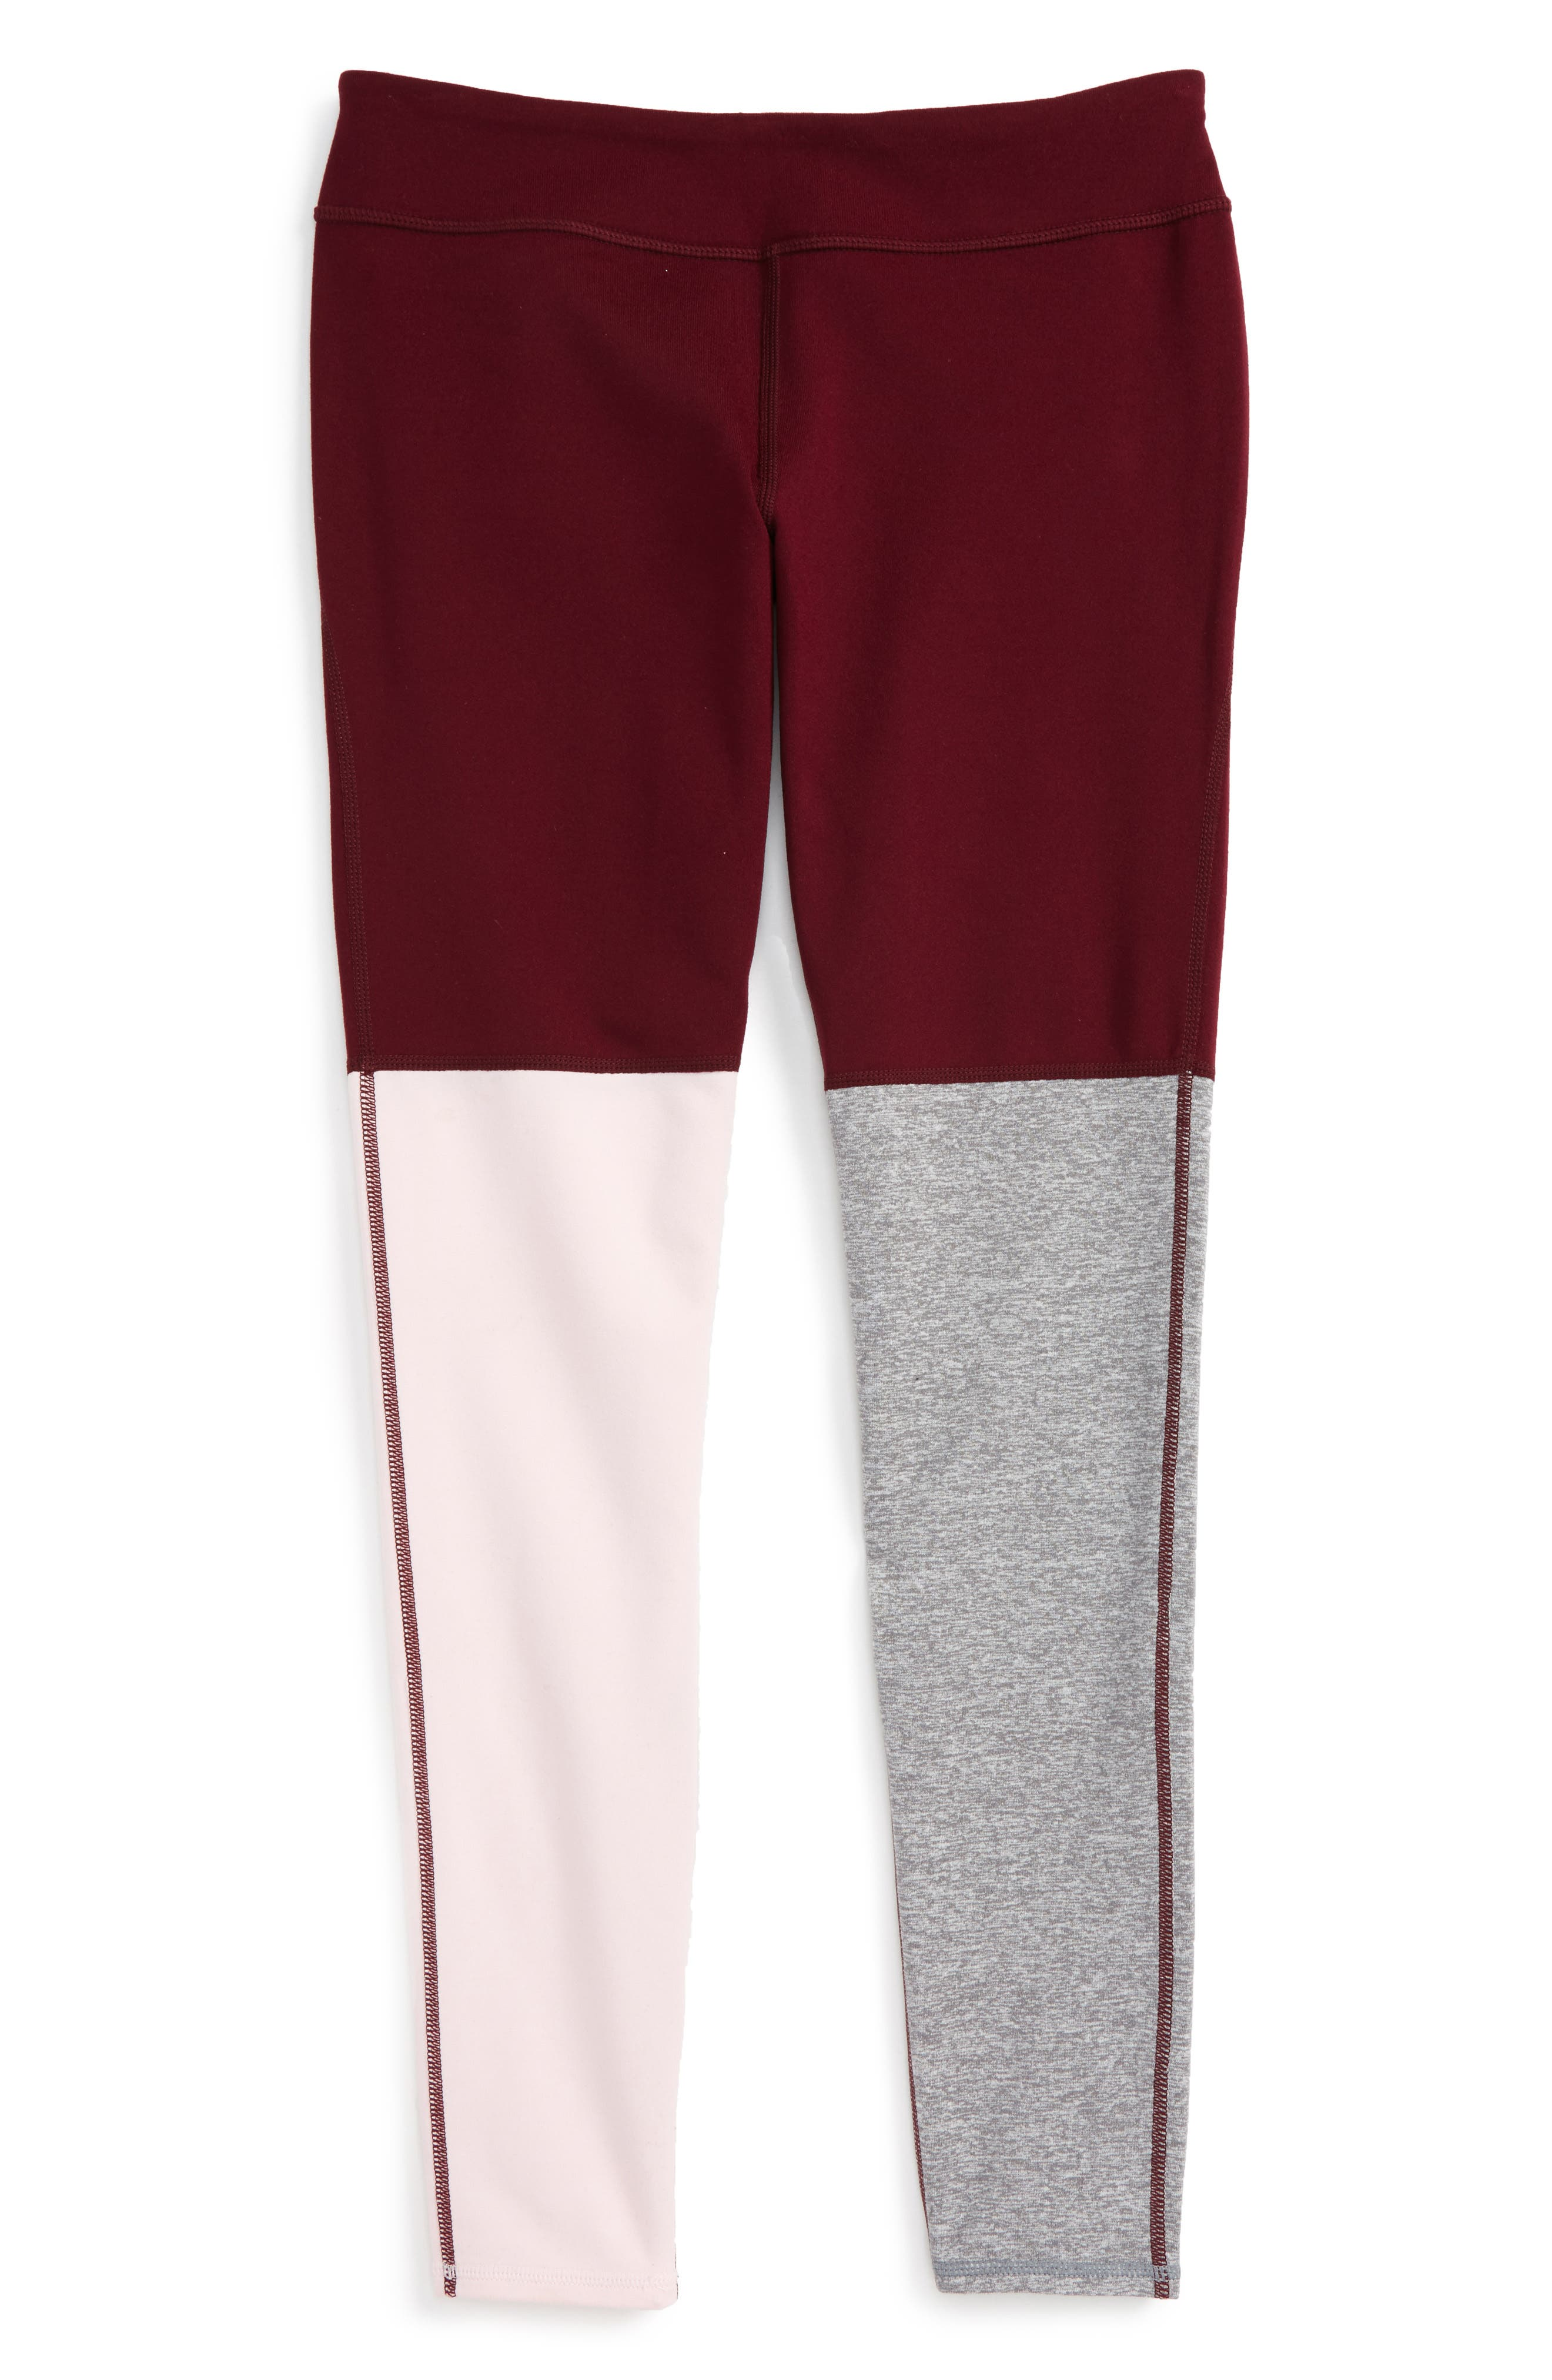 Zella Girl Tricolor Performance Leggings (Little Girls & Big Girls)